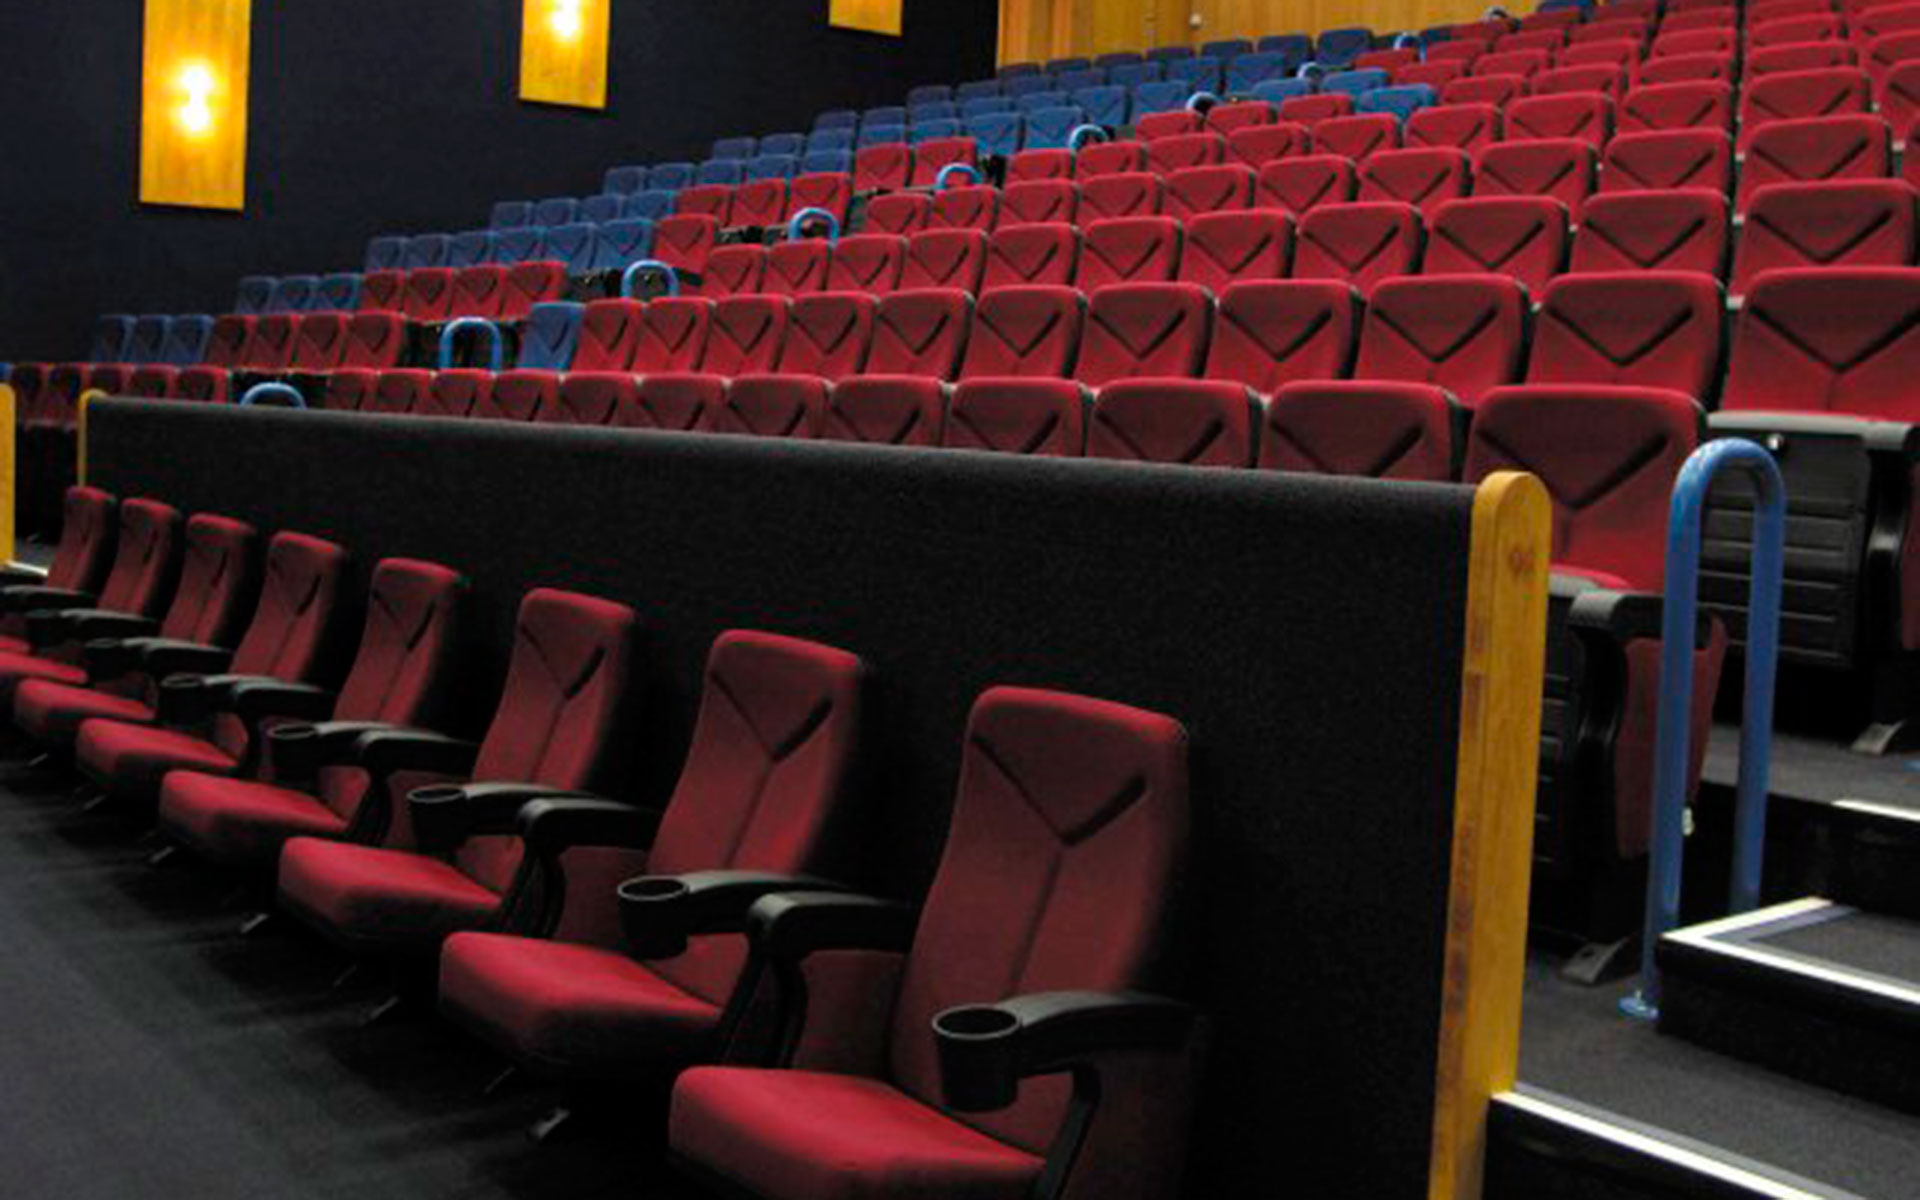 Dbox Sessel Projekte Sessel Für Theater Euro Seating